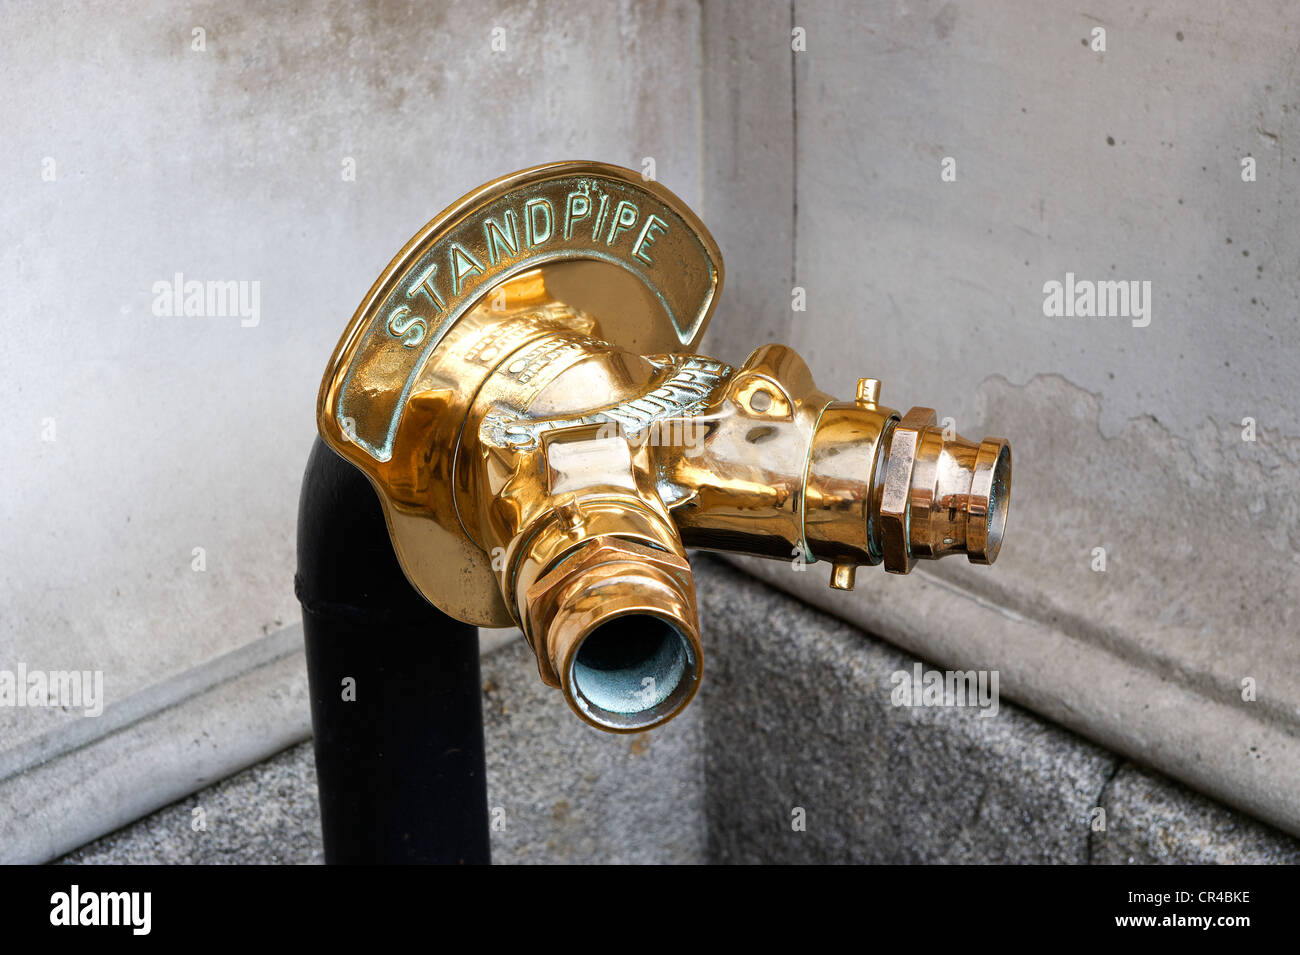 Gold plated water access for the fire brigade at the Davenport hotel on Merrion square, Dublin, Republic of Ireland, - Stock Image